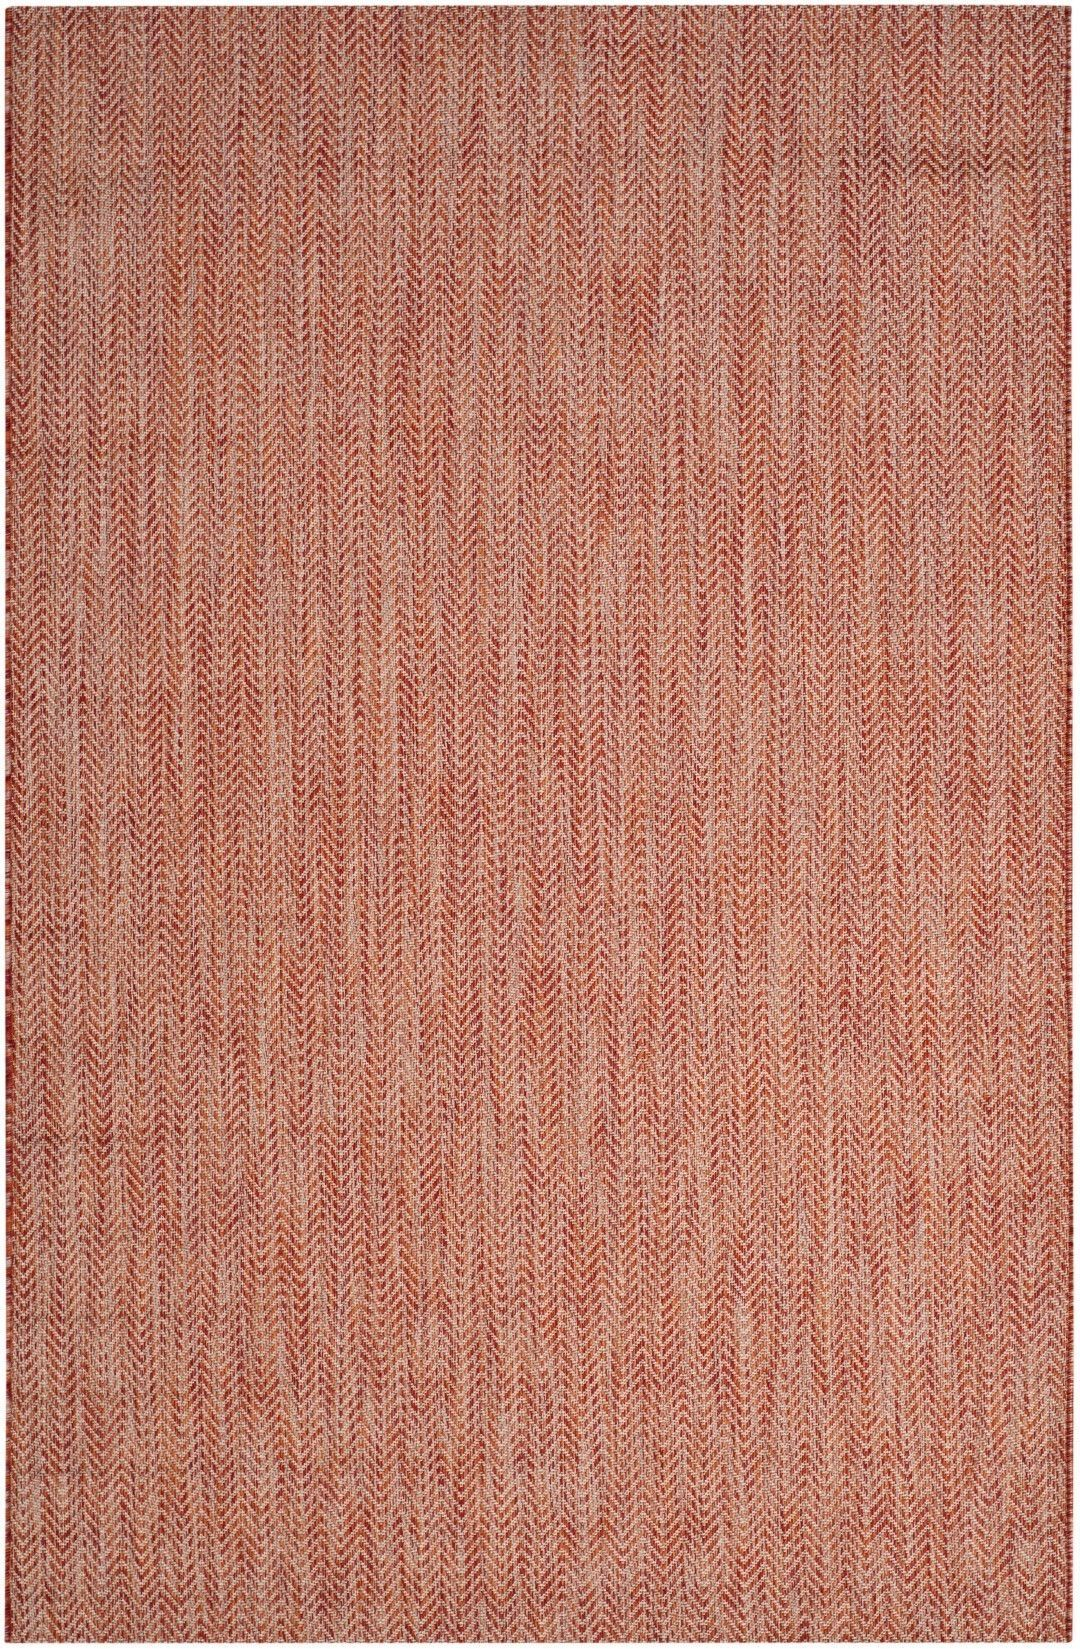 Courtyard Red / Beige Area Rug